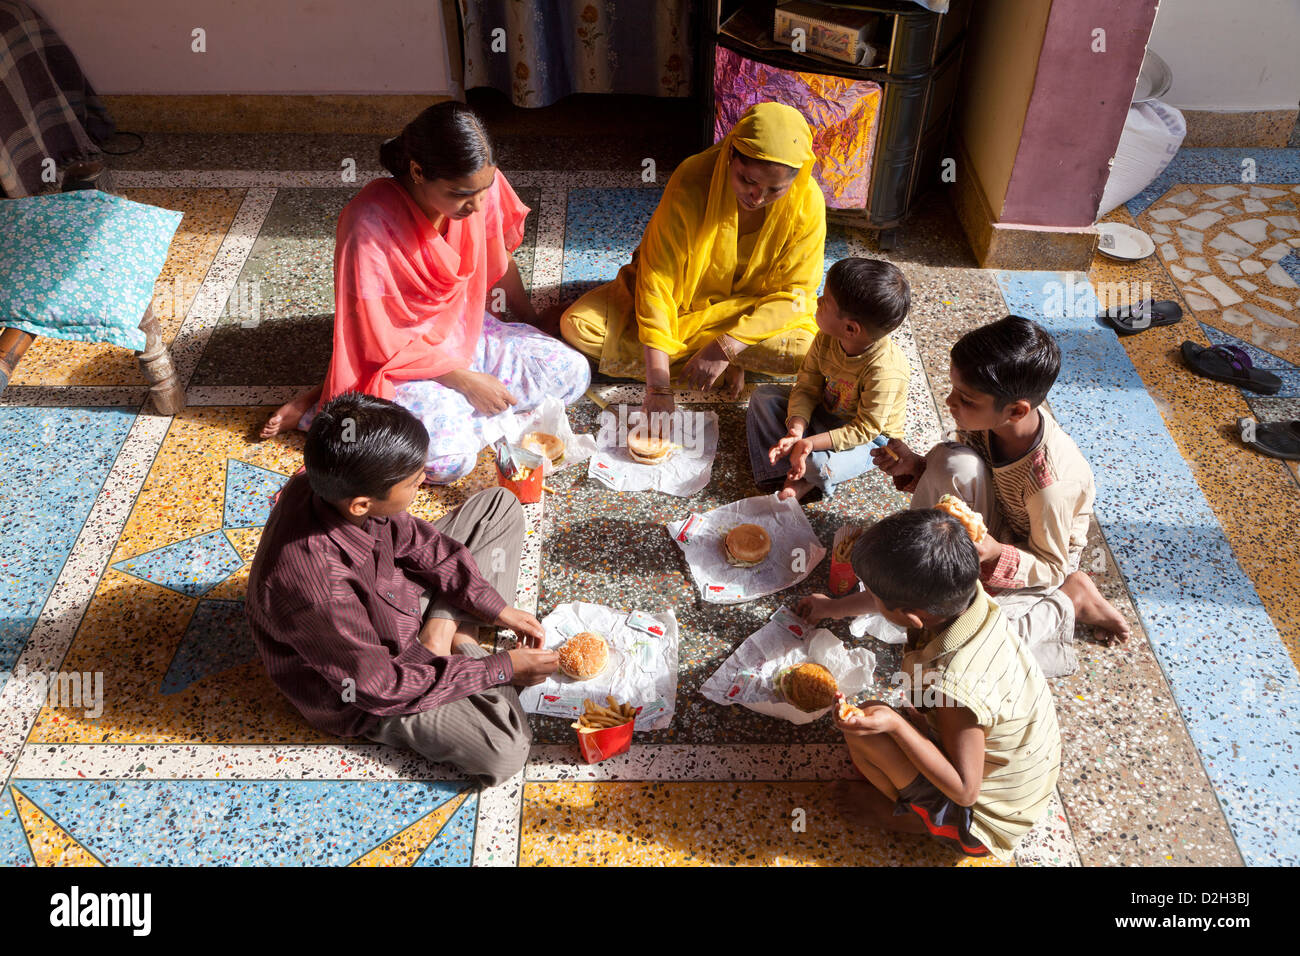 India, uttar Pradesh, Agra Mother and five children eating western style fast food - Stock Image